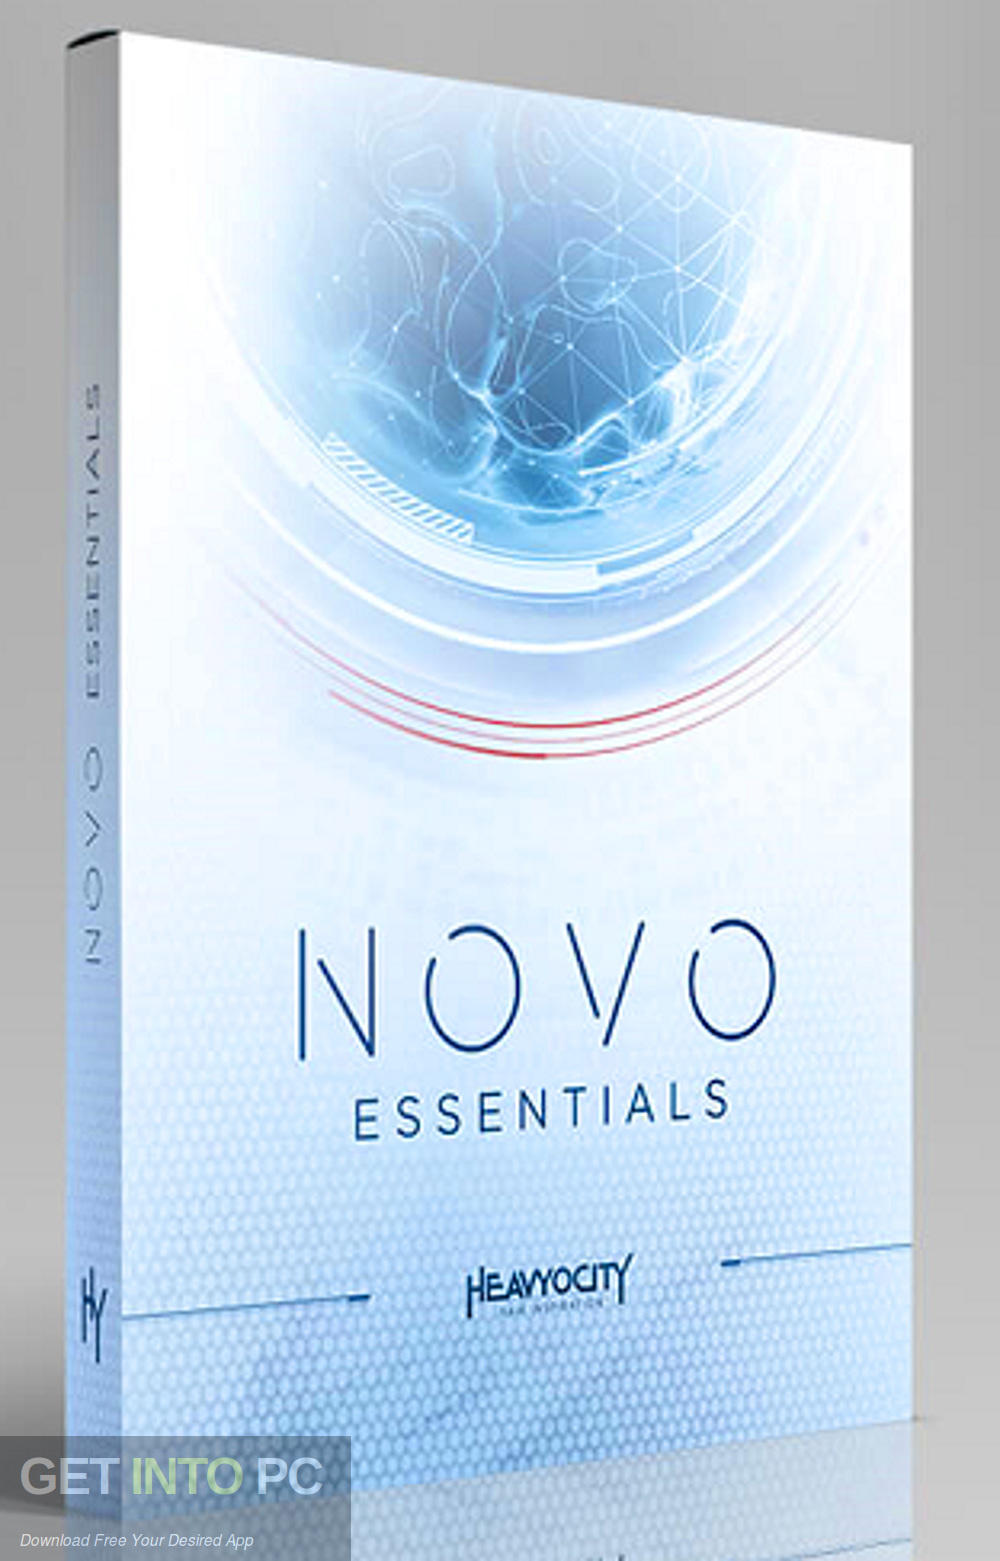 Heavyocity - NOVO Essentials (KONTAKT) Library Free Download-GetintoPC.com